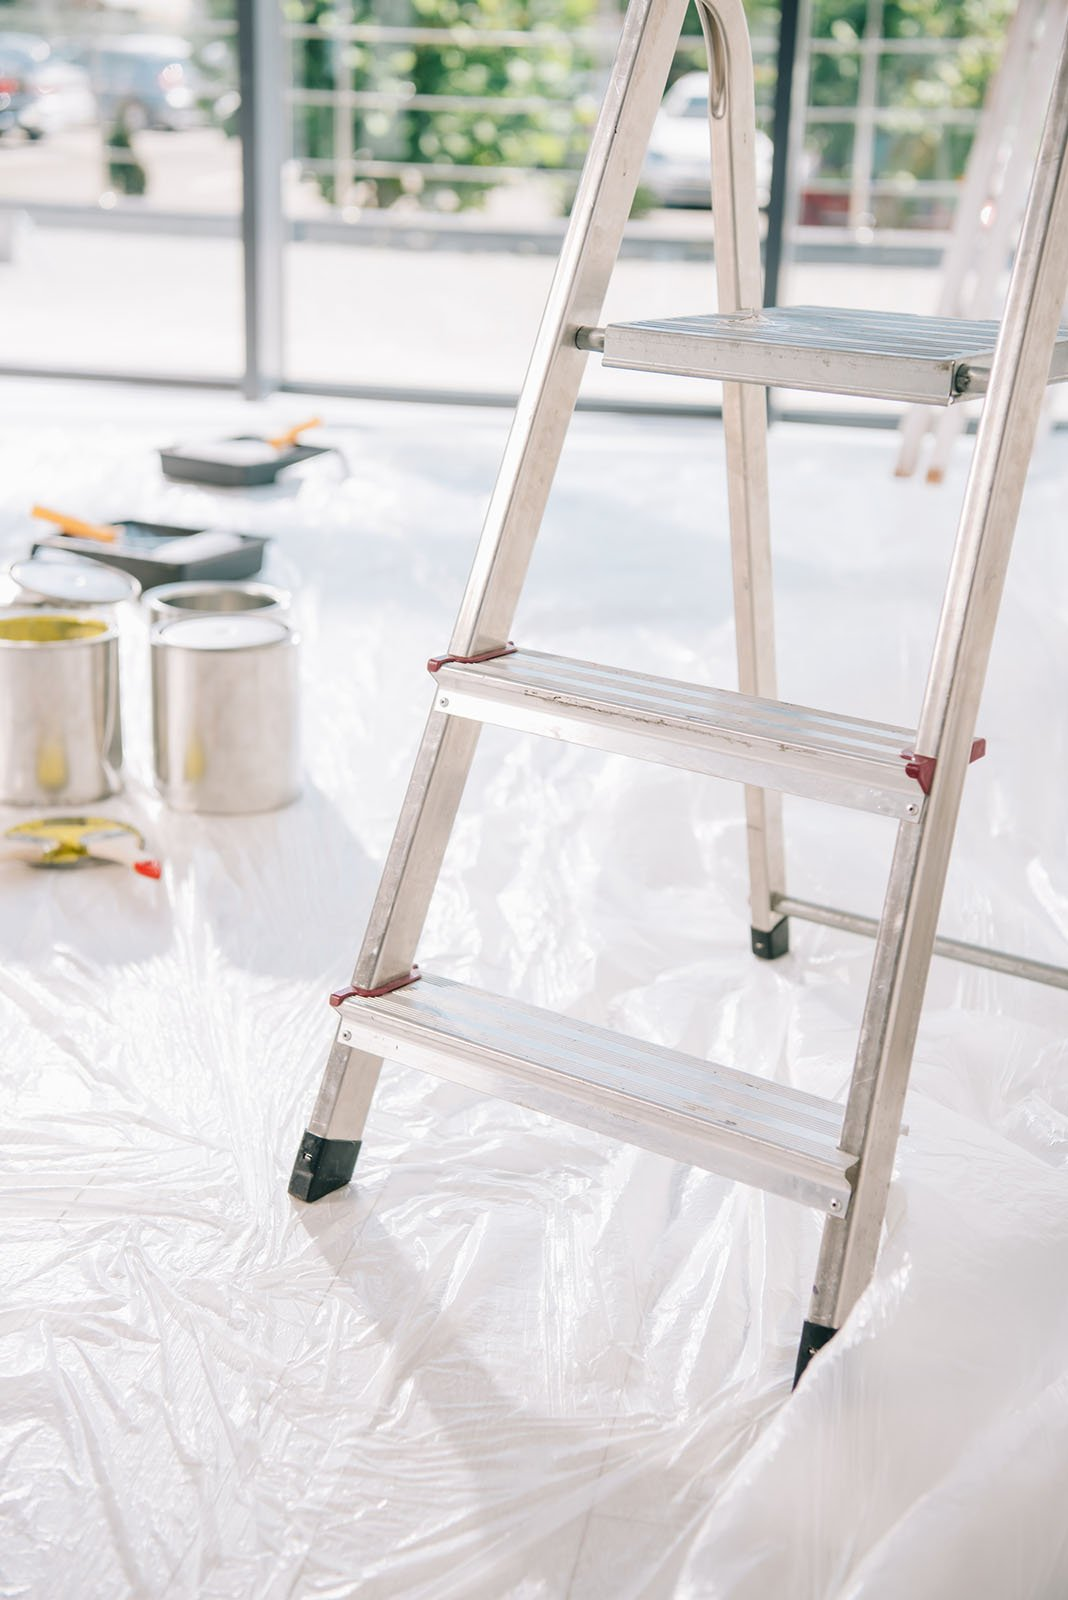 close-up of ladder and paint cans